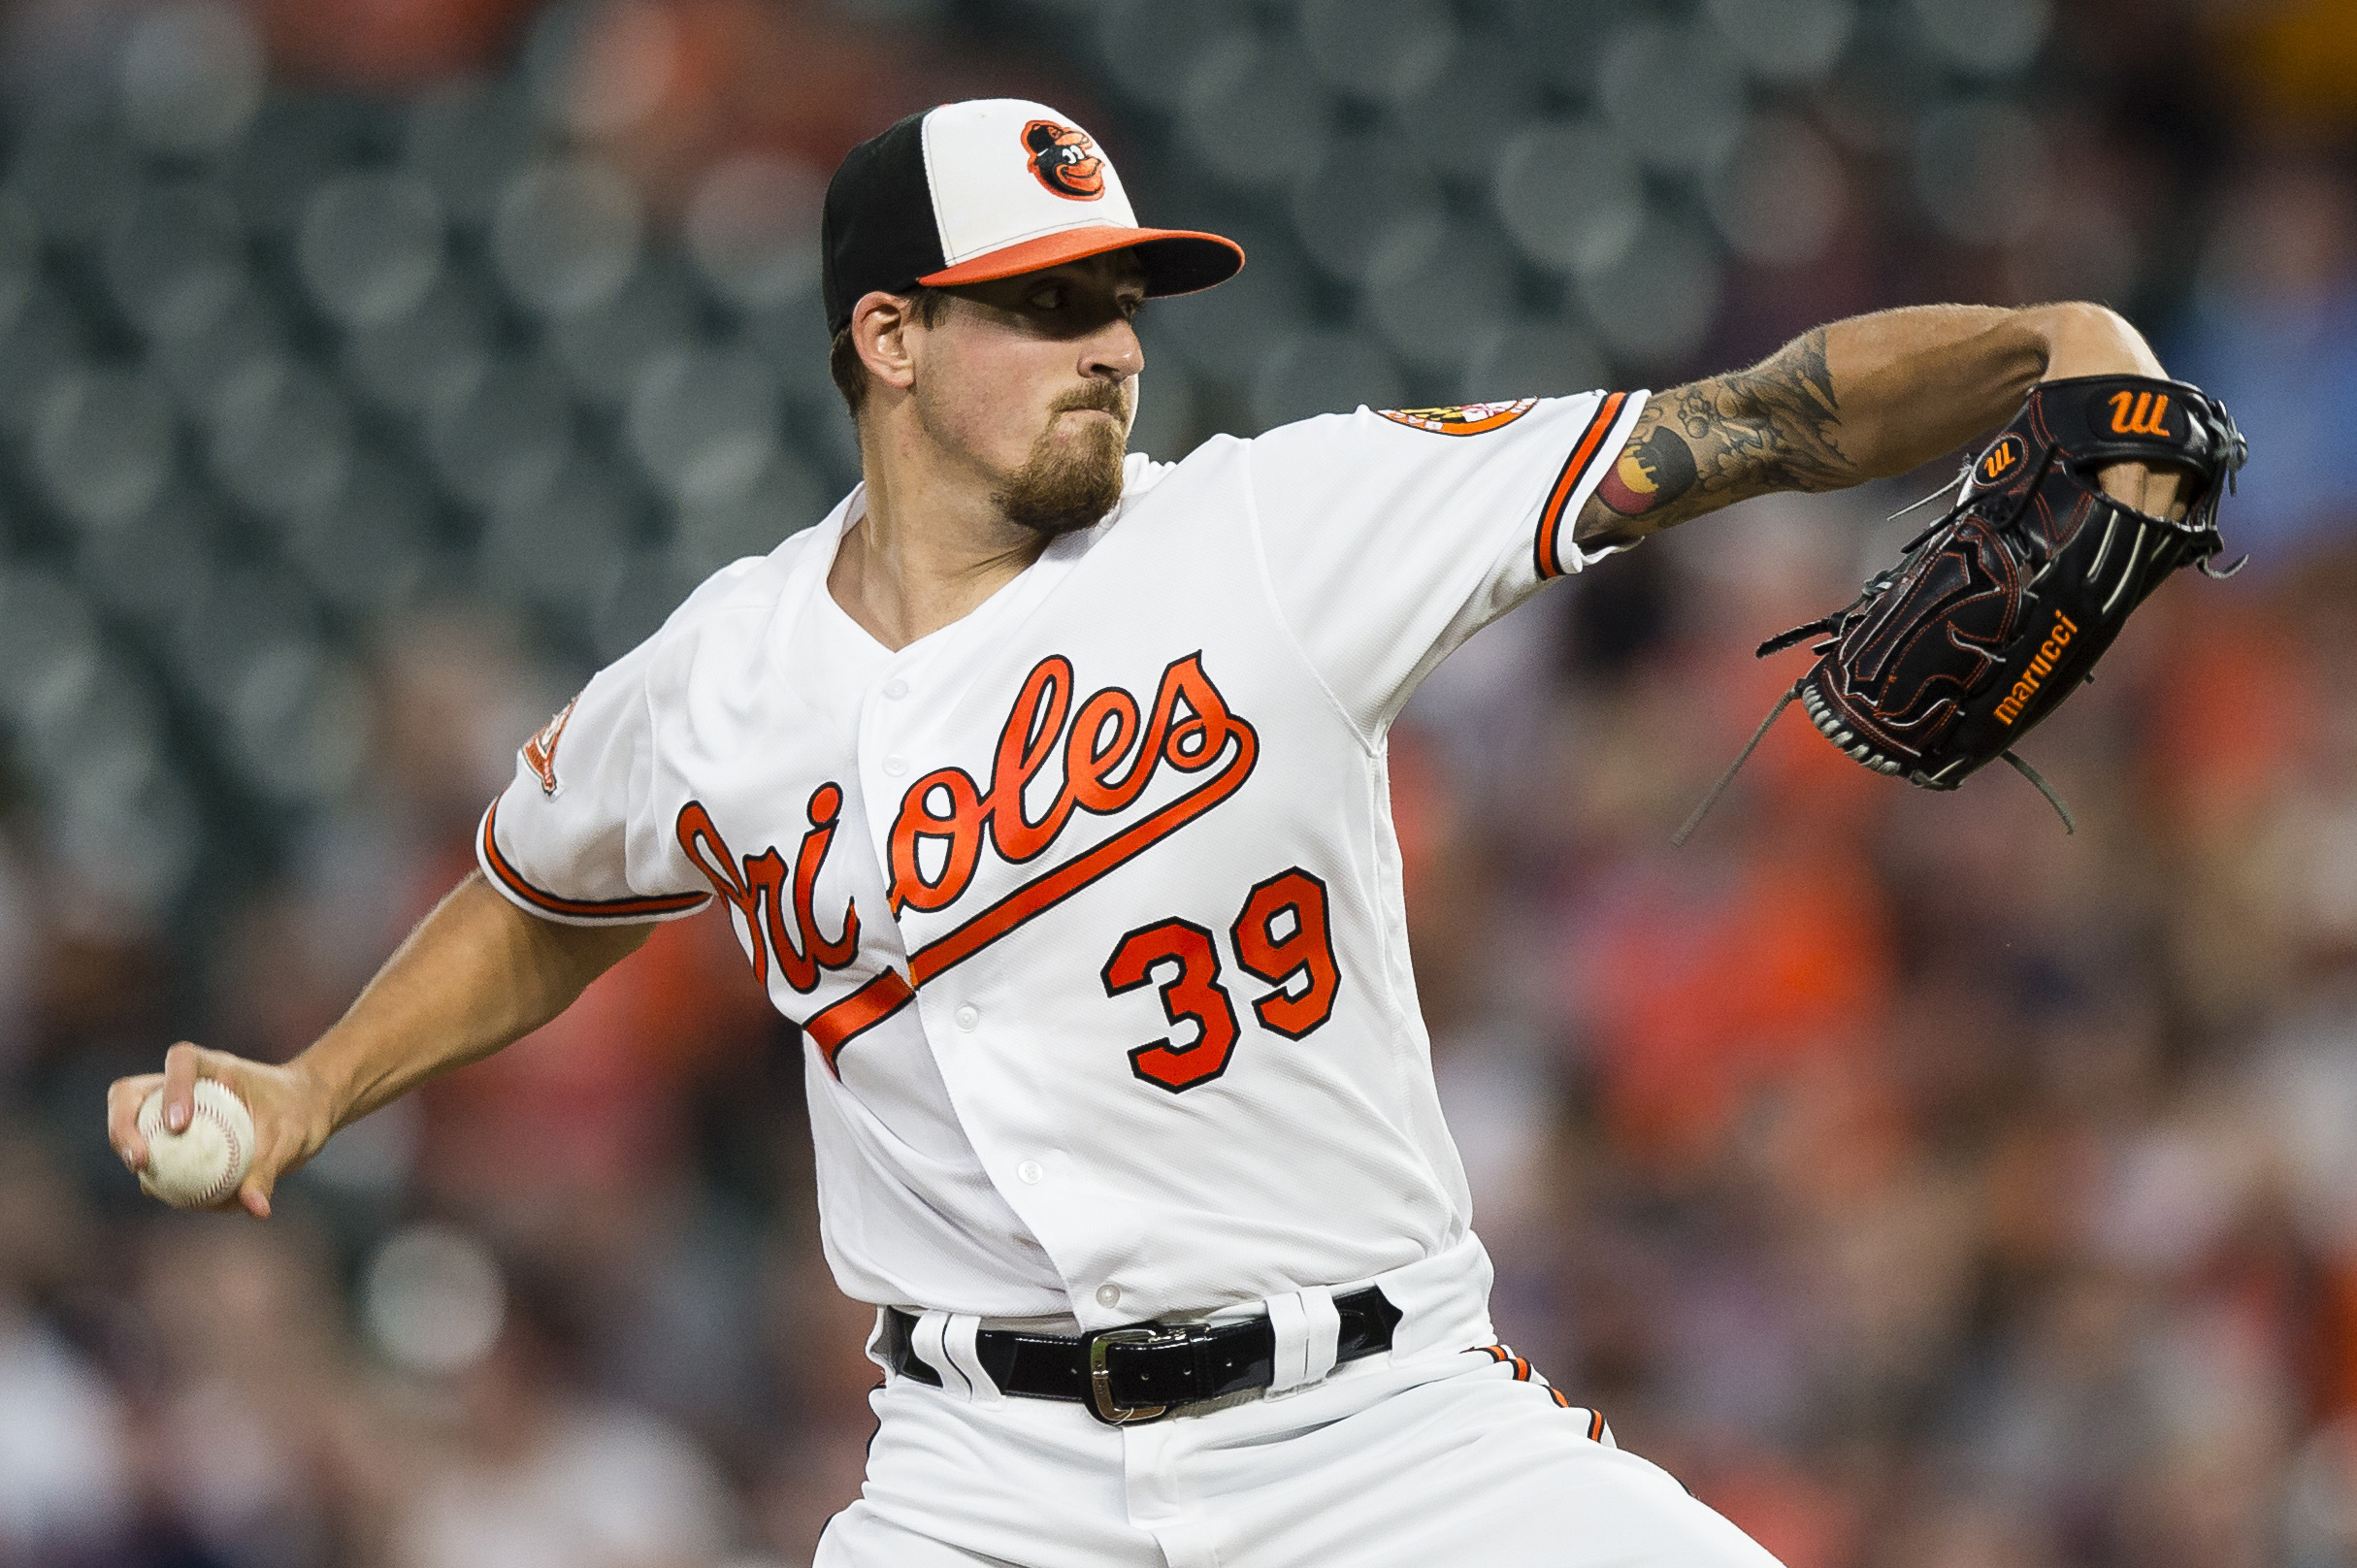 Sep 19, 2017; Baltimore, MD, USA; Baltimore Orioles starting pitcher Kevin Gausman (39) throws a pitch in the first inning against the Boston Red Sox at Oriole Park at Camden Yards. Mandatory Credit: Patrick McDermott-USA TODAY Sports